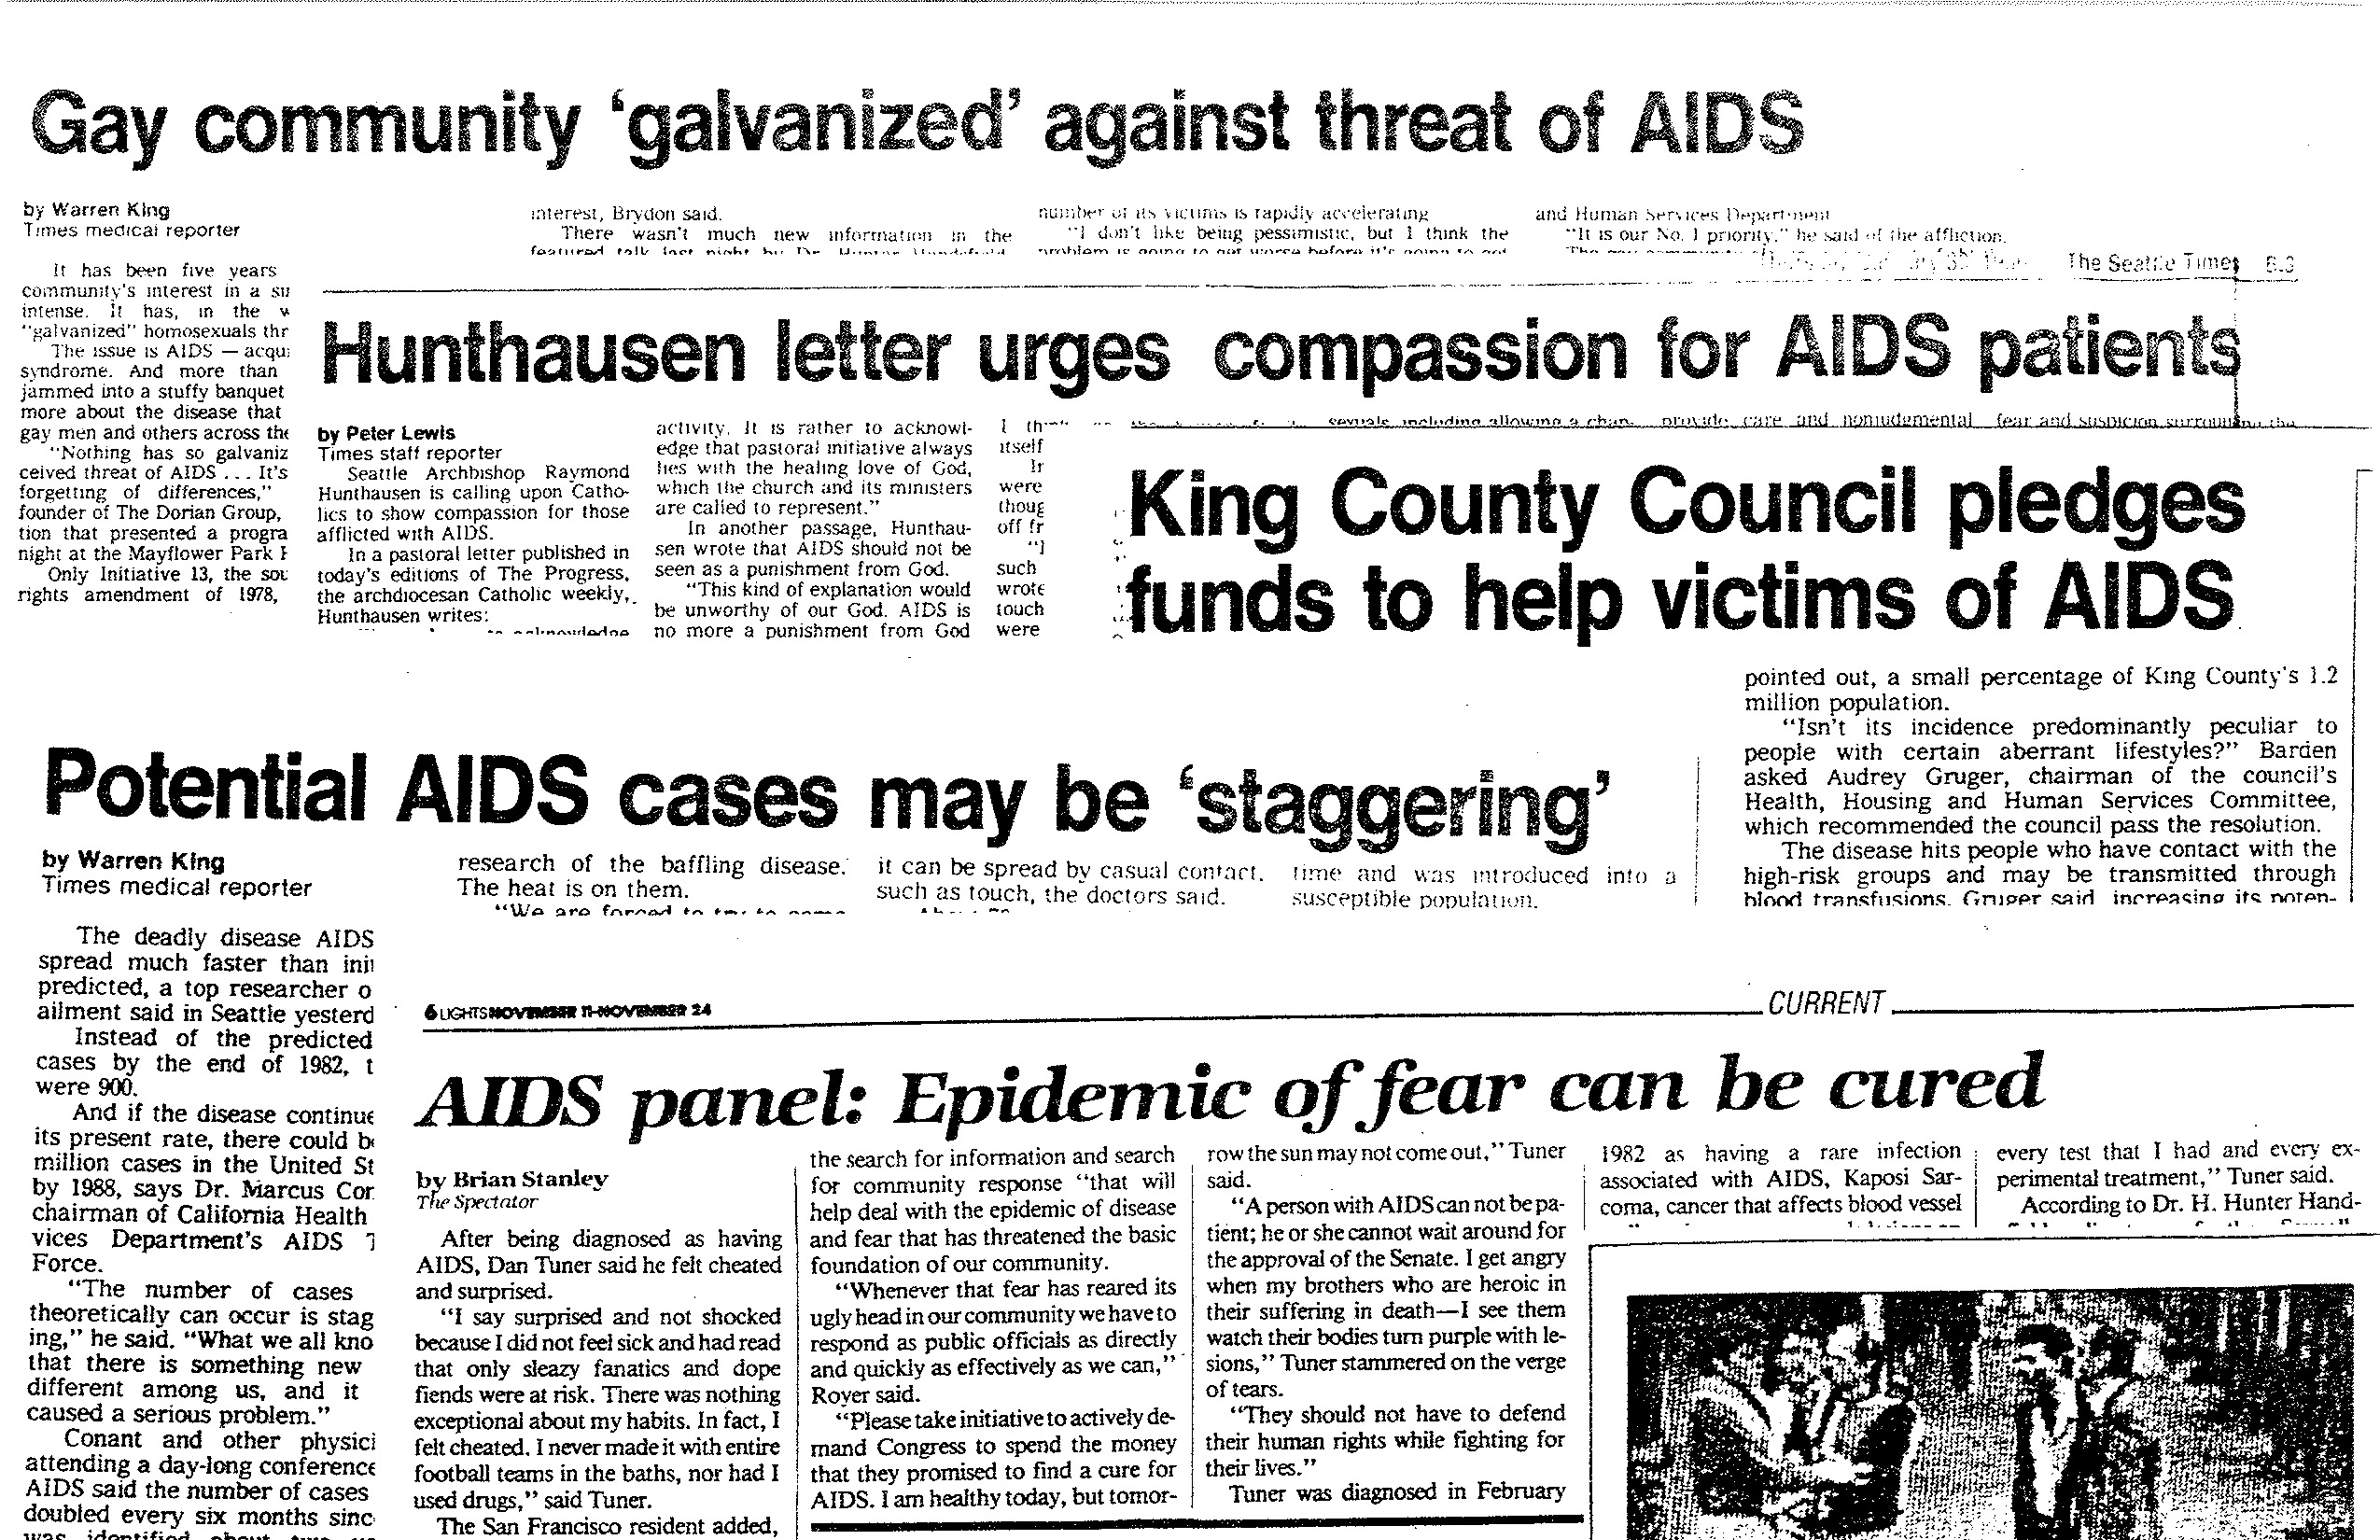 1825-1-7-collage-of-early-AIDS-headlines